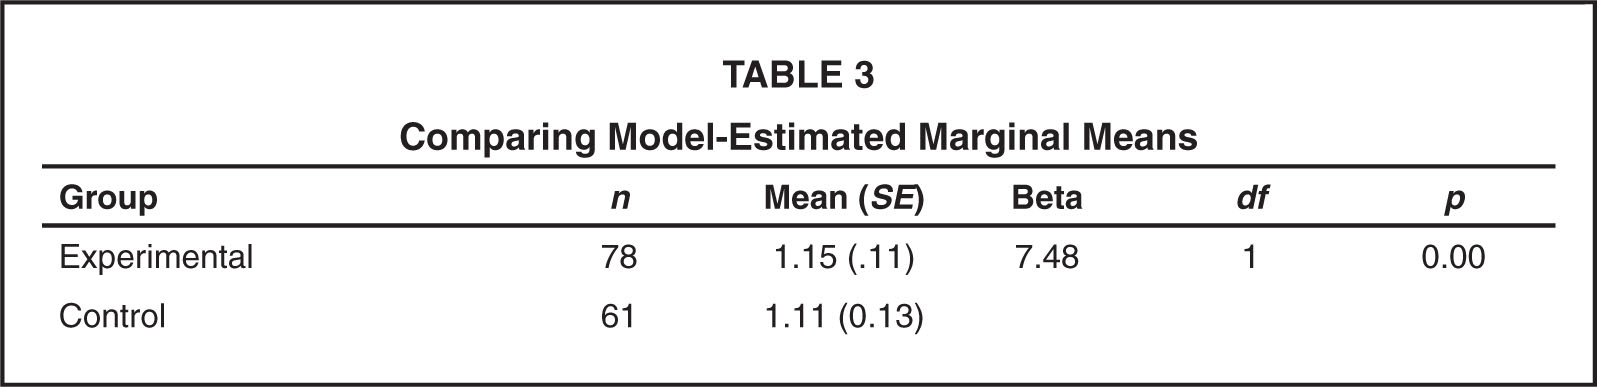 Comparing Model-Estimated Marginal Means